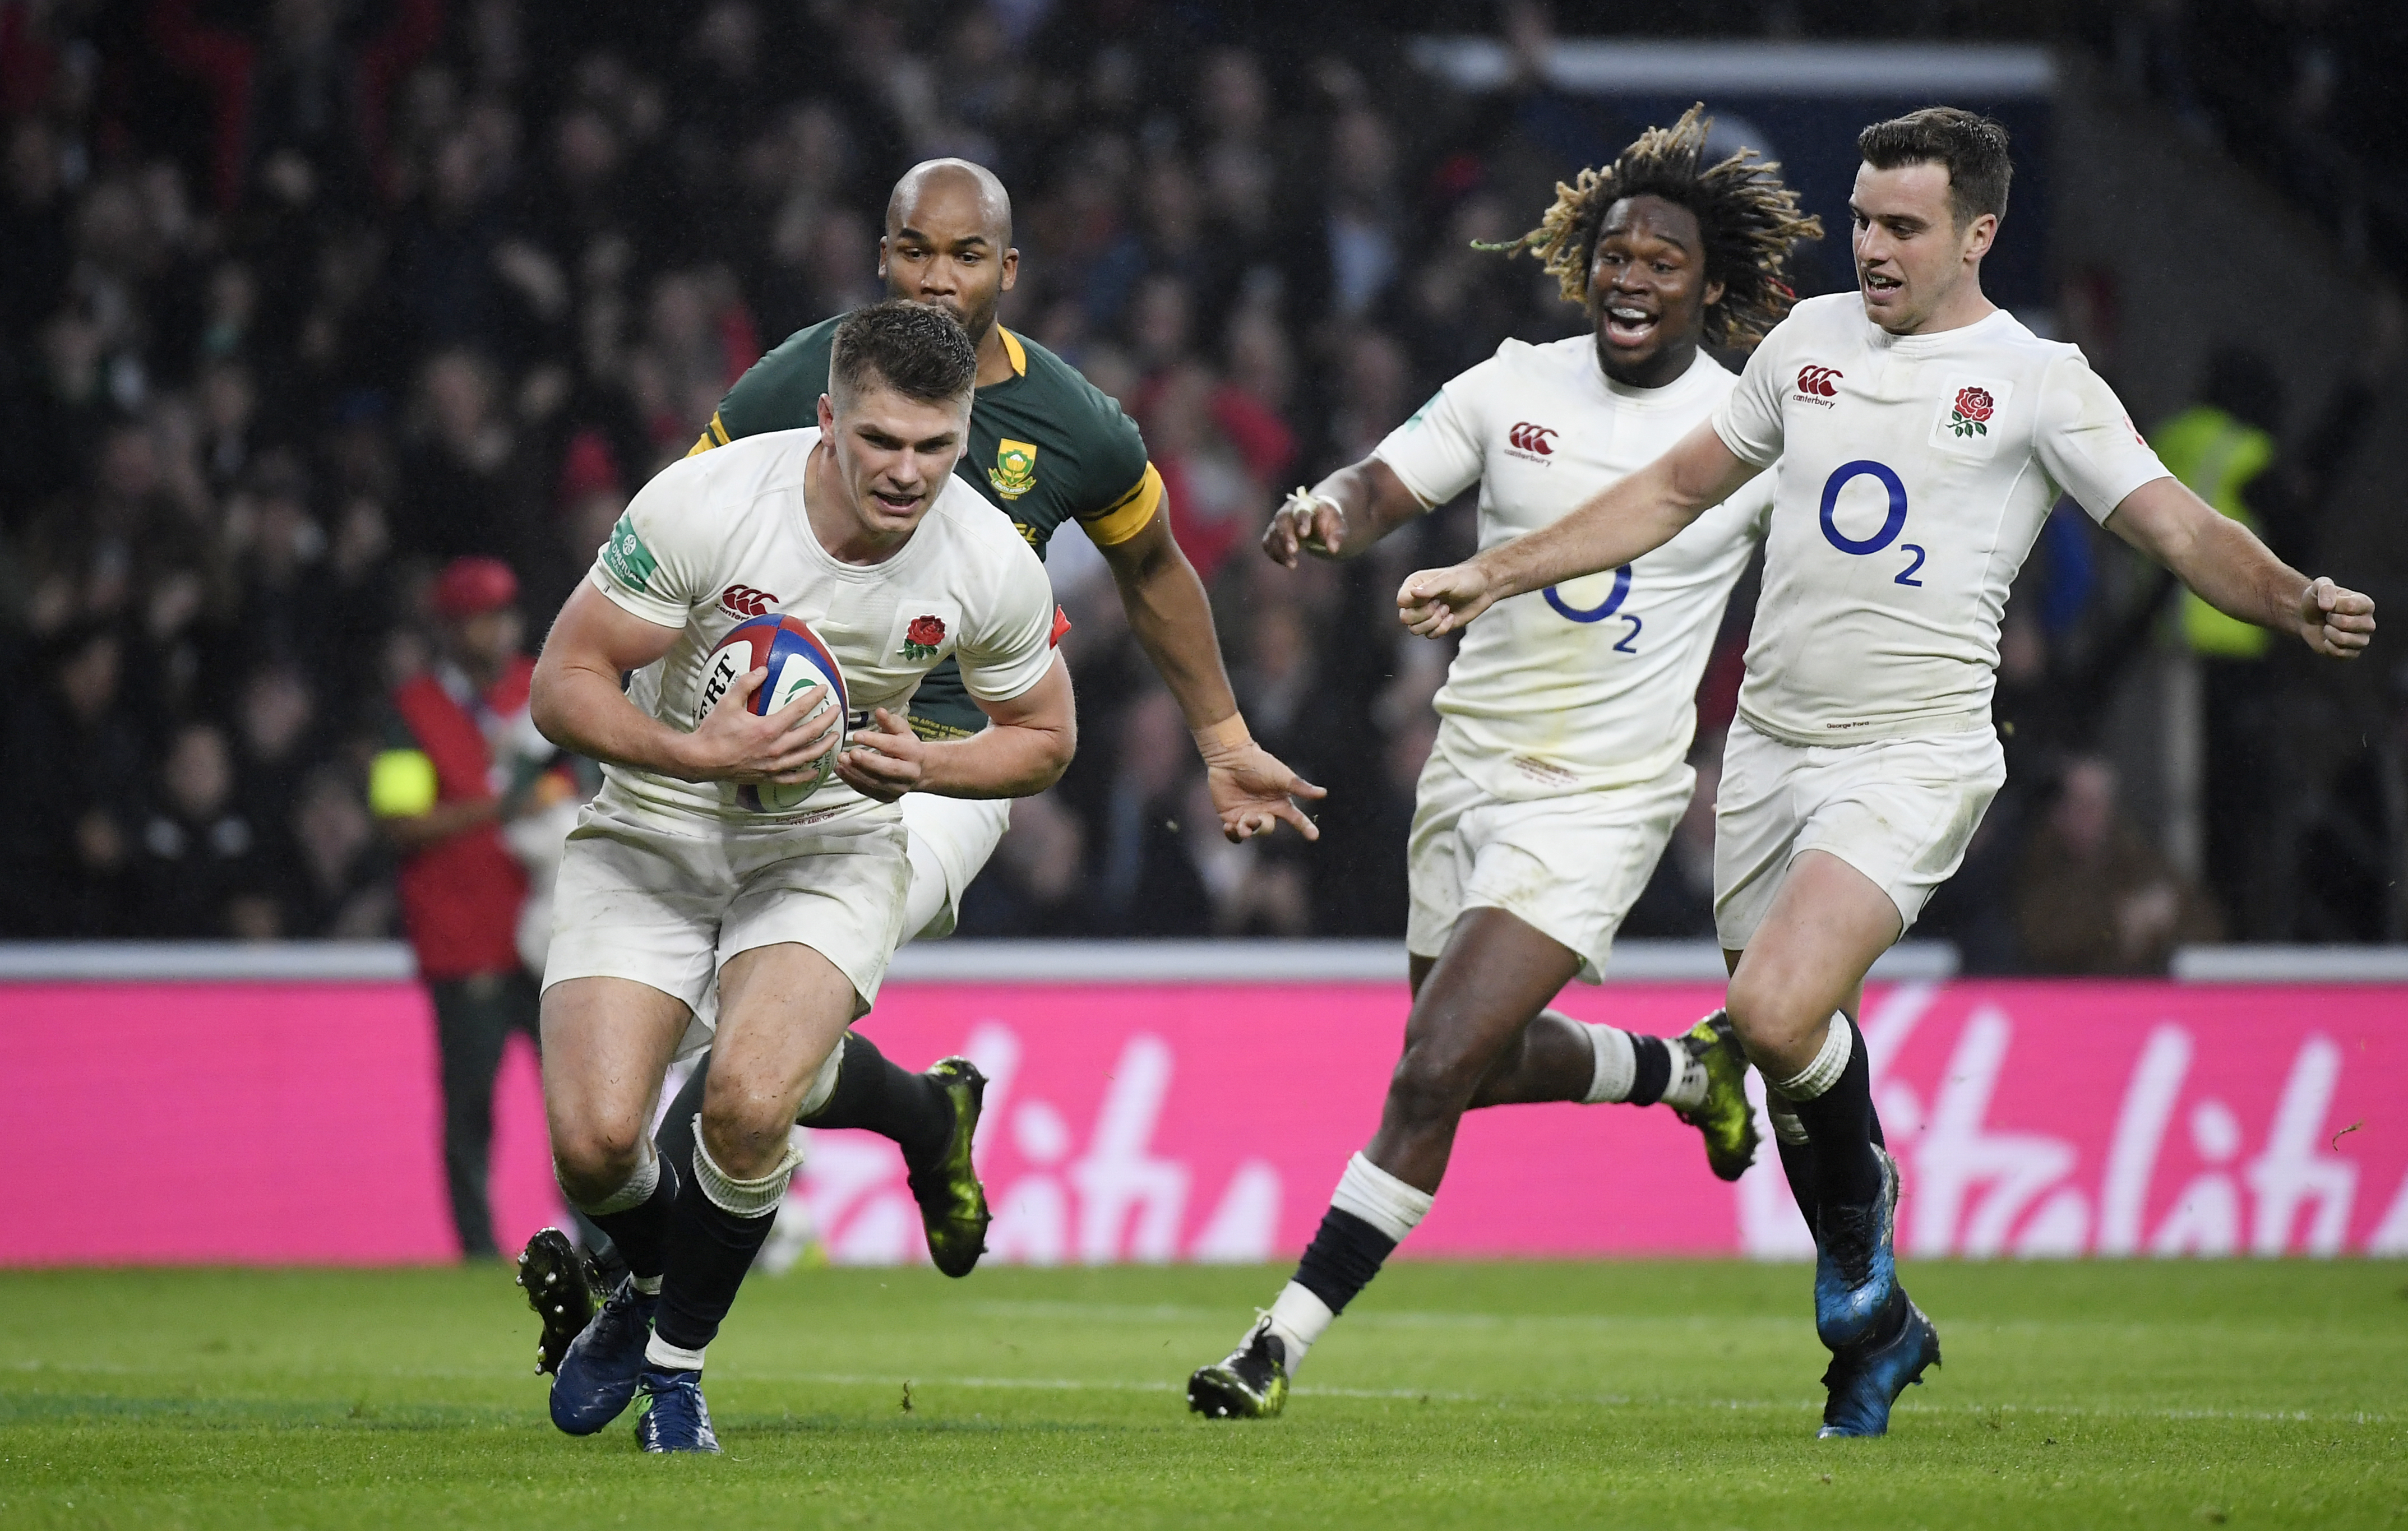 Rugby: England end South Africa jinx in style